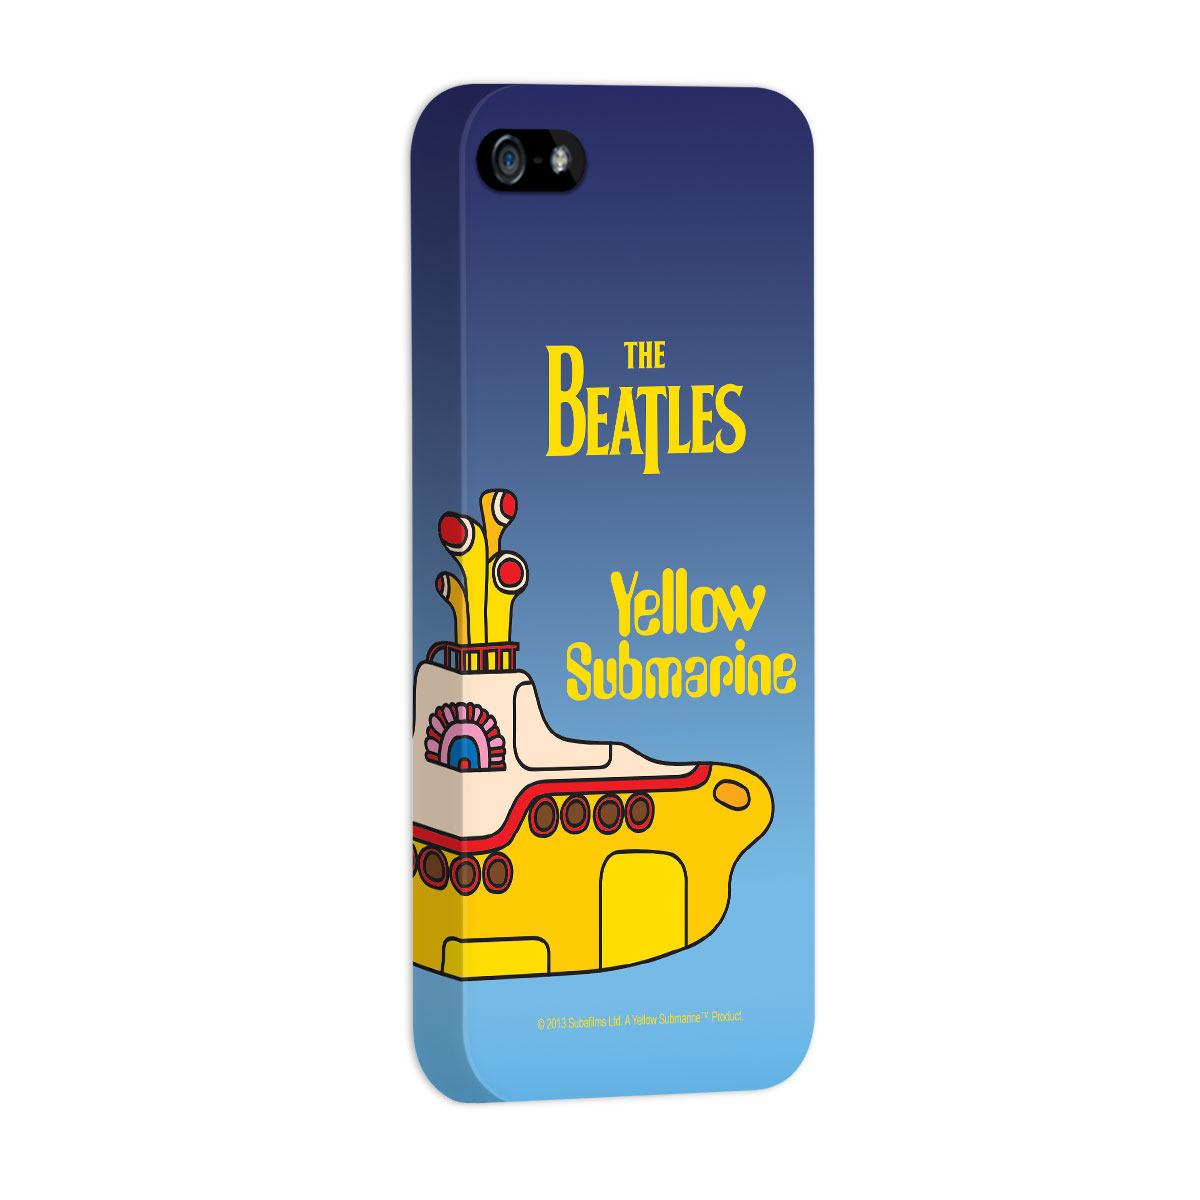 Capa de iPhone 5/5S The Beatles Yellow Submarine